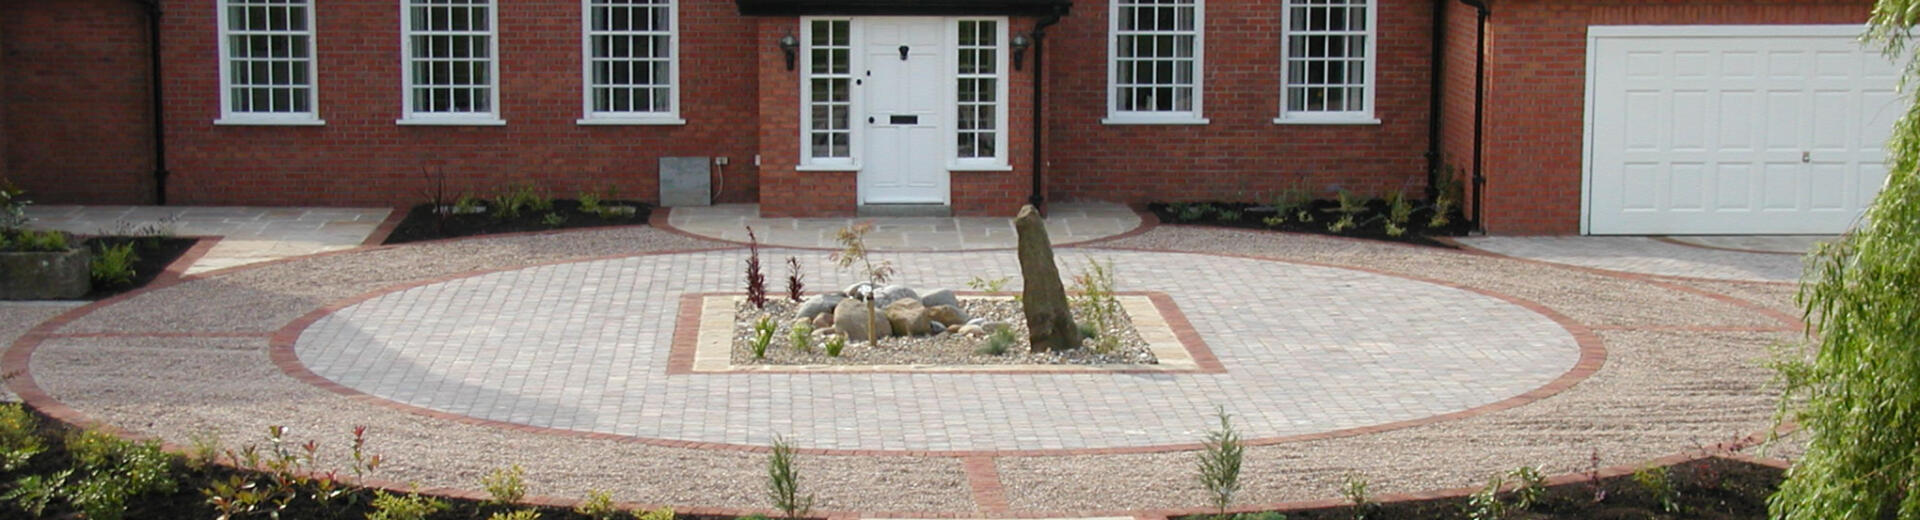 Trevor Smith Landscapes Ltd